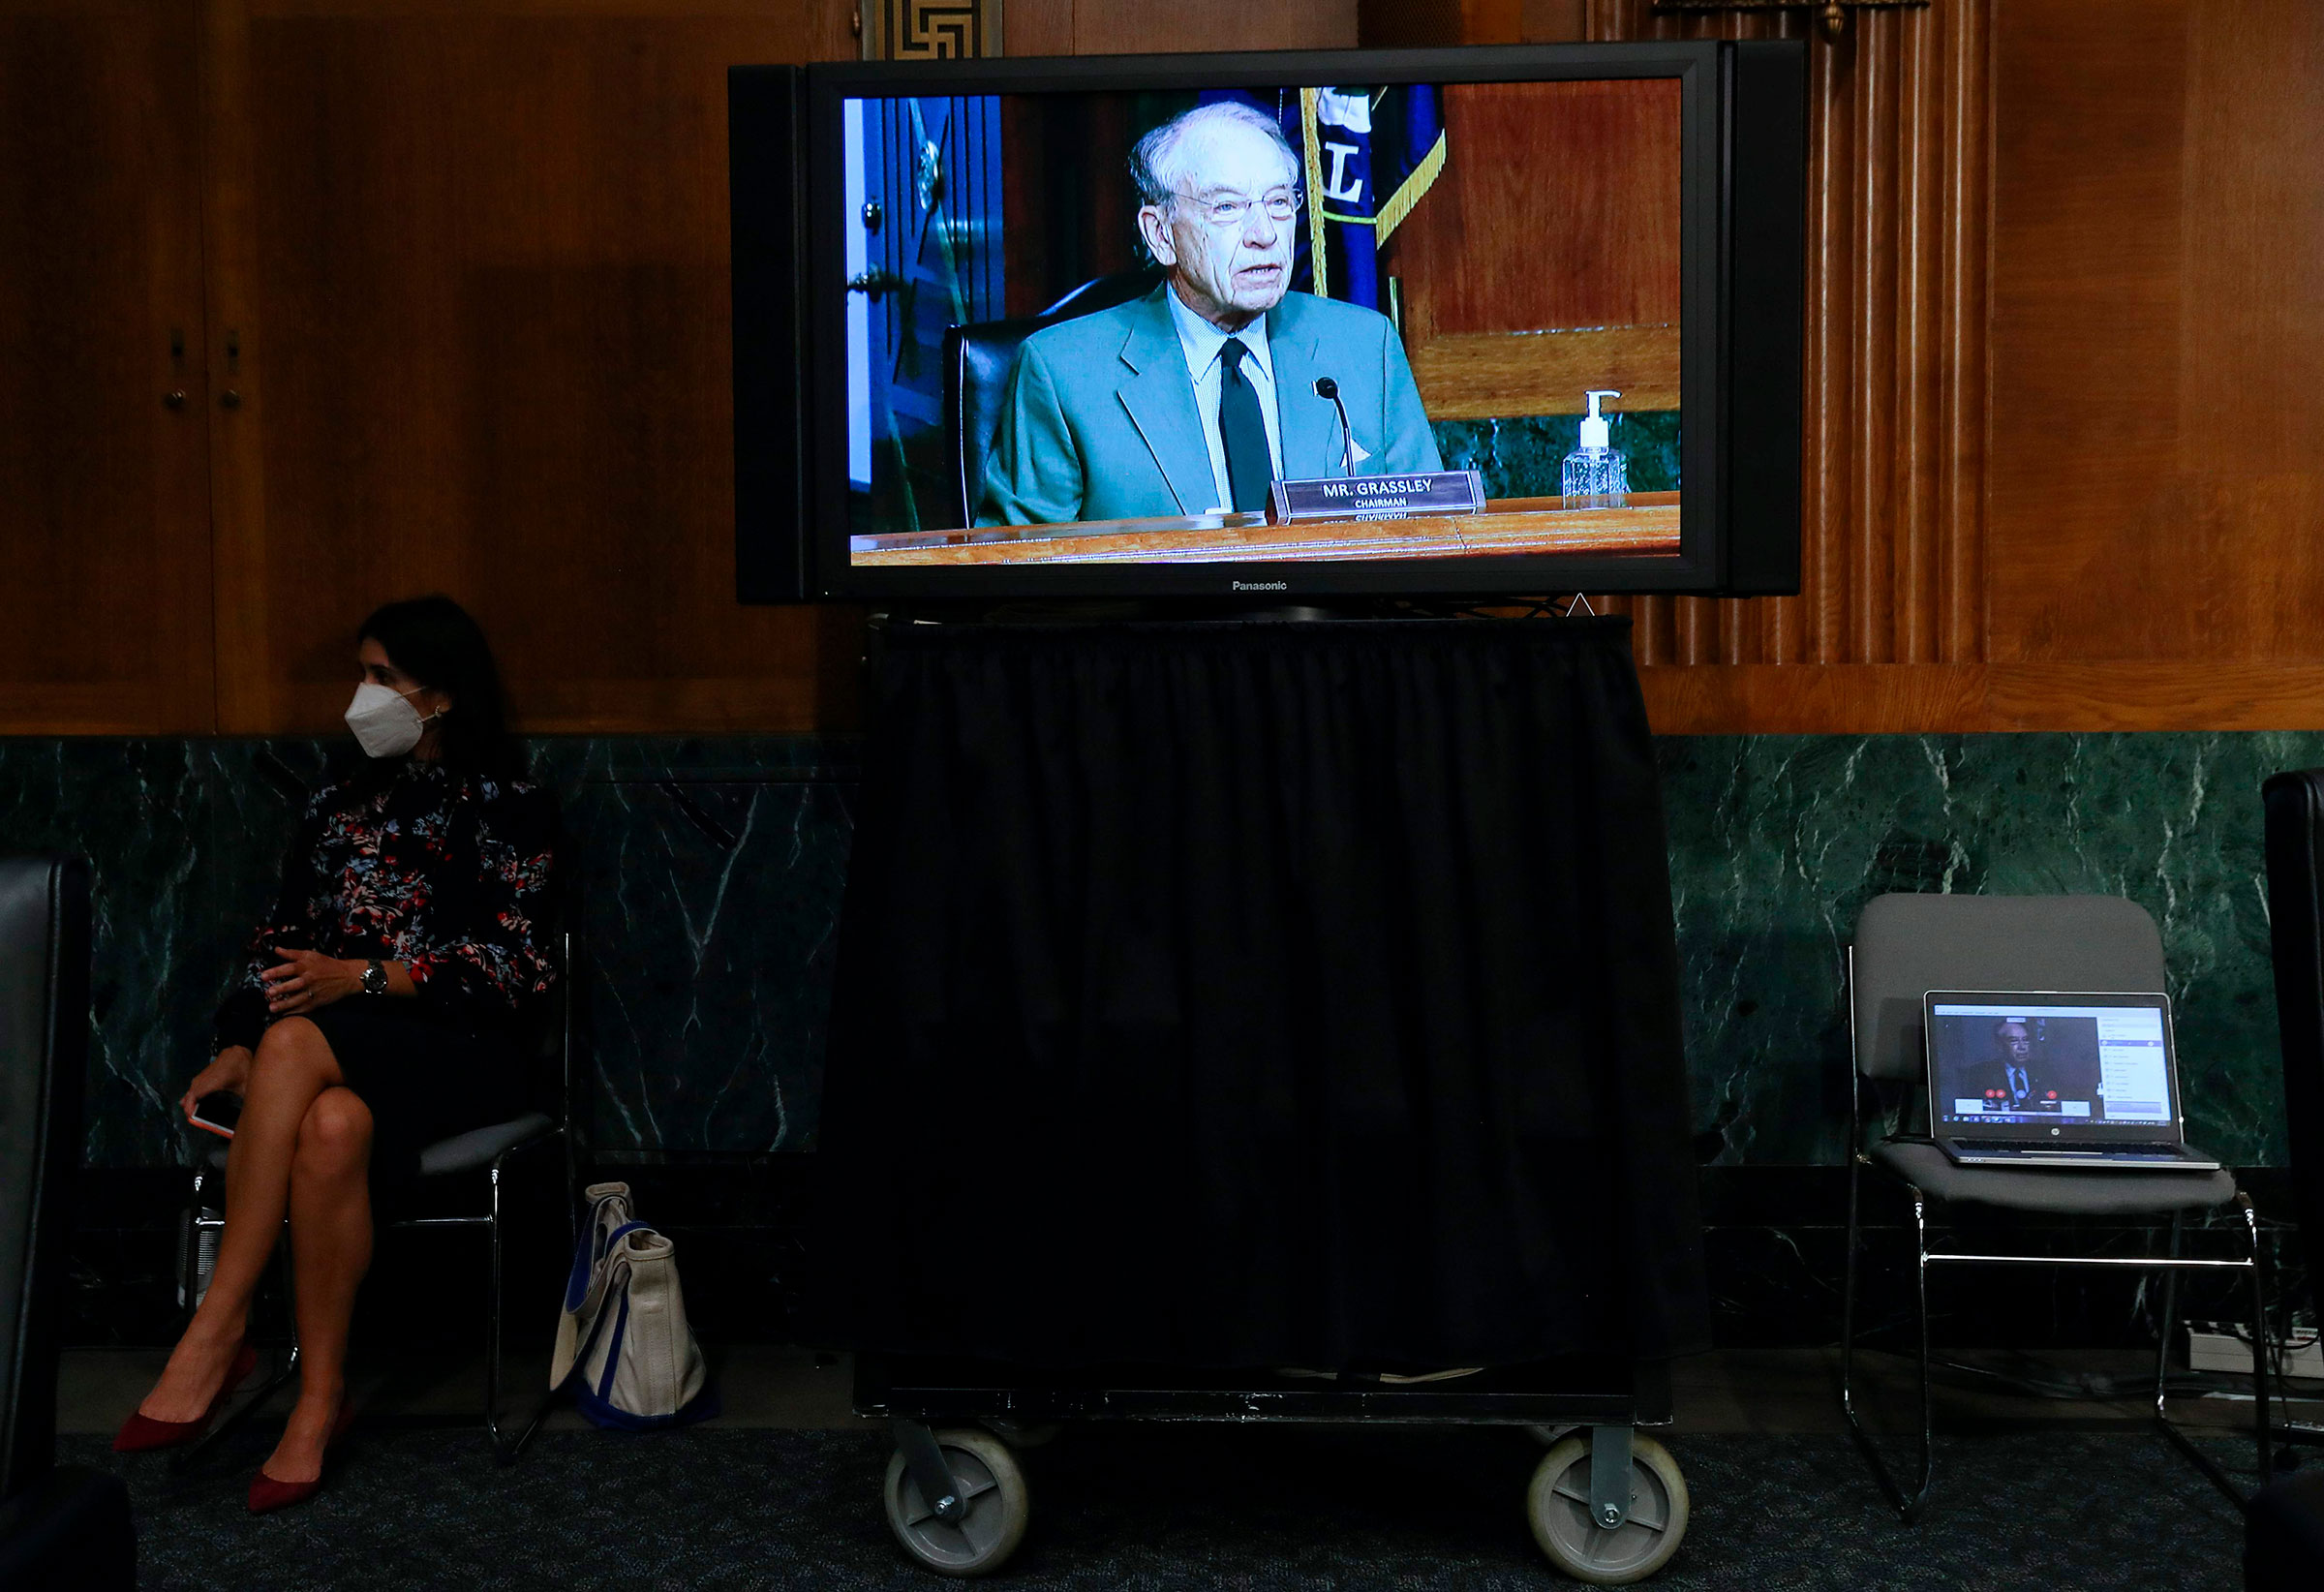 Committee Chairman Sen. Chuck Grassley is seen on a television monitor as he presides during a Senate Finance Committee hearing on Capitol Hill on June 9, 2020.